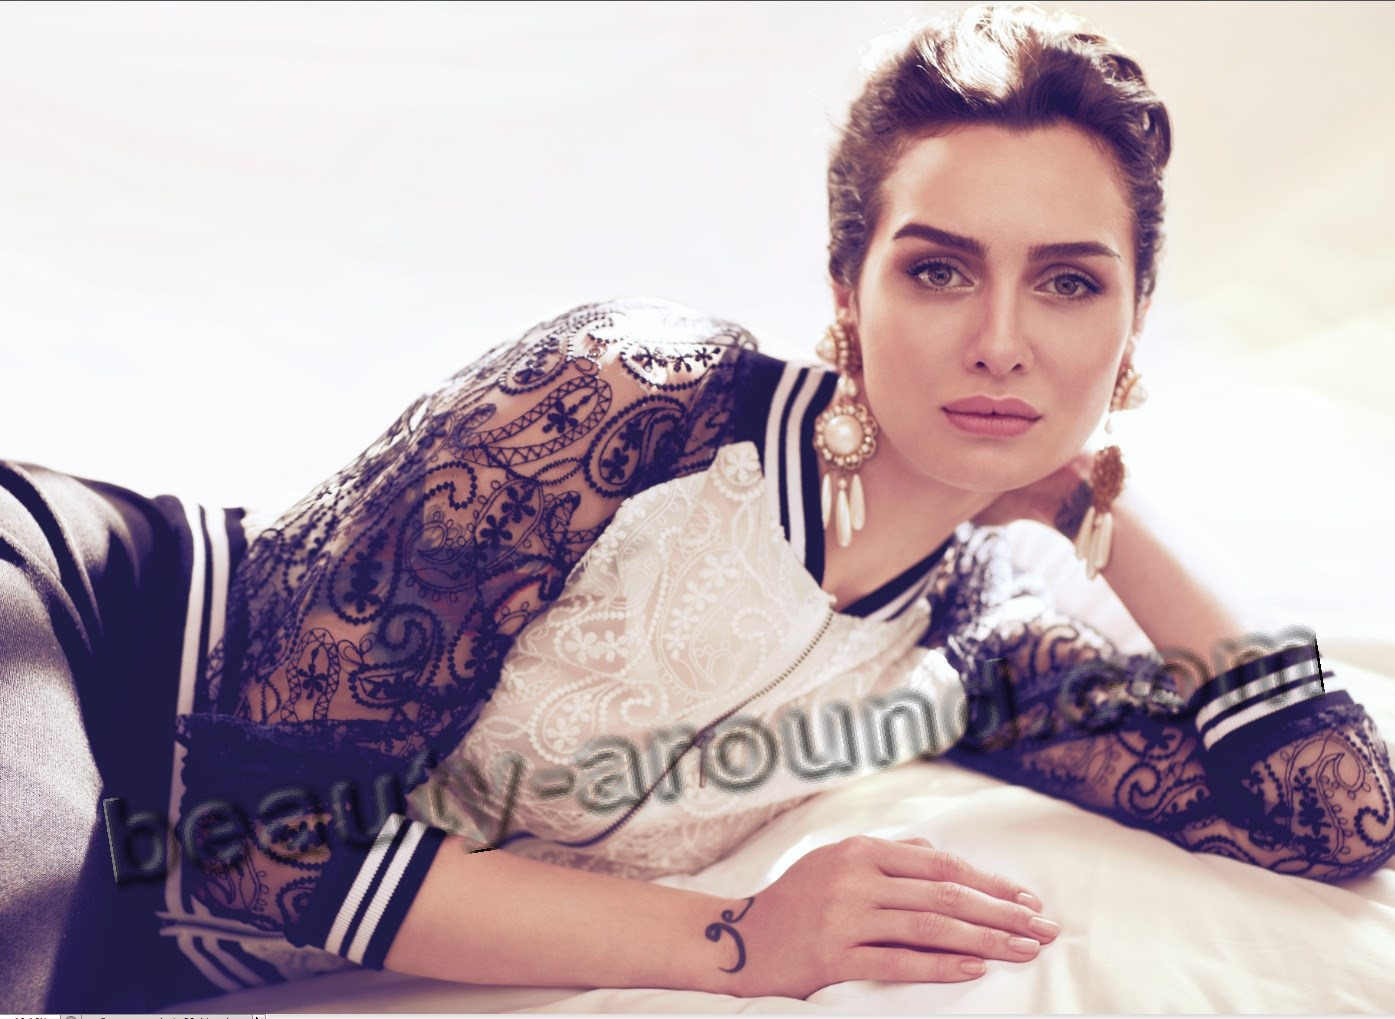 Beautiful Turkish woman Birce Akalay photo